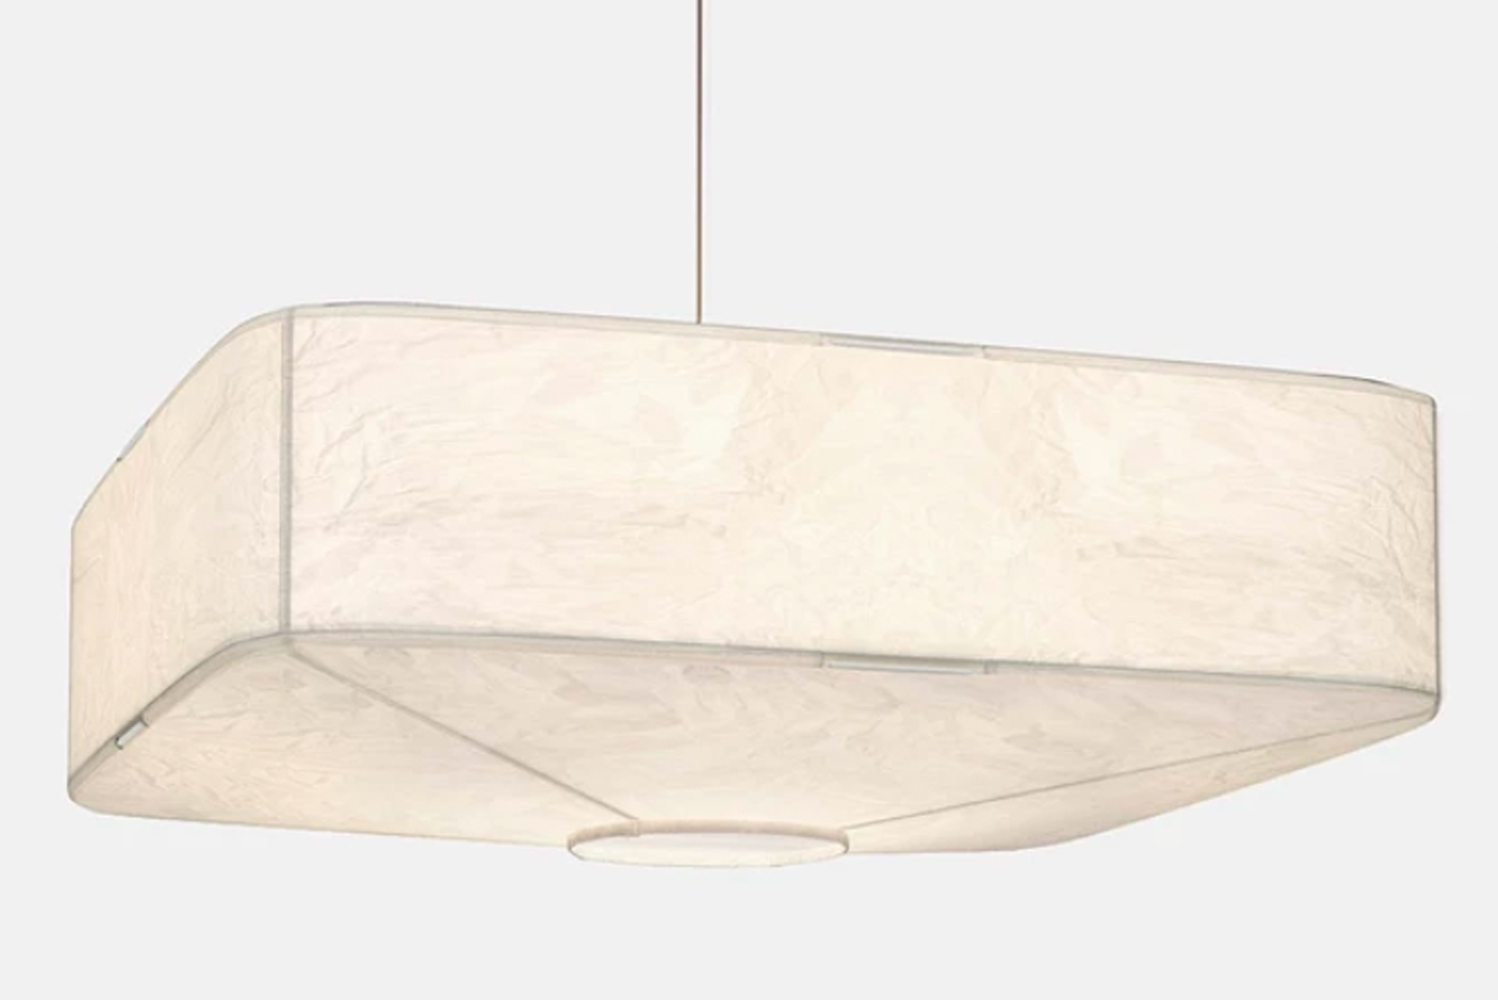 Introducing a new lighting fixture from Rich Brilliant Willing.